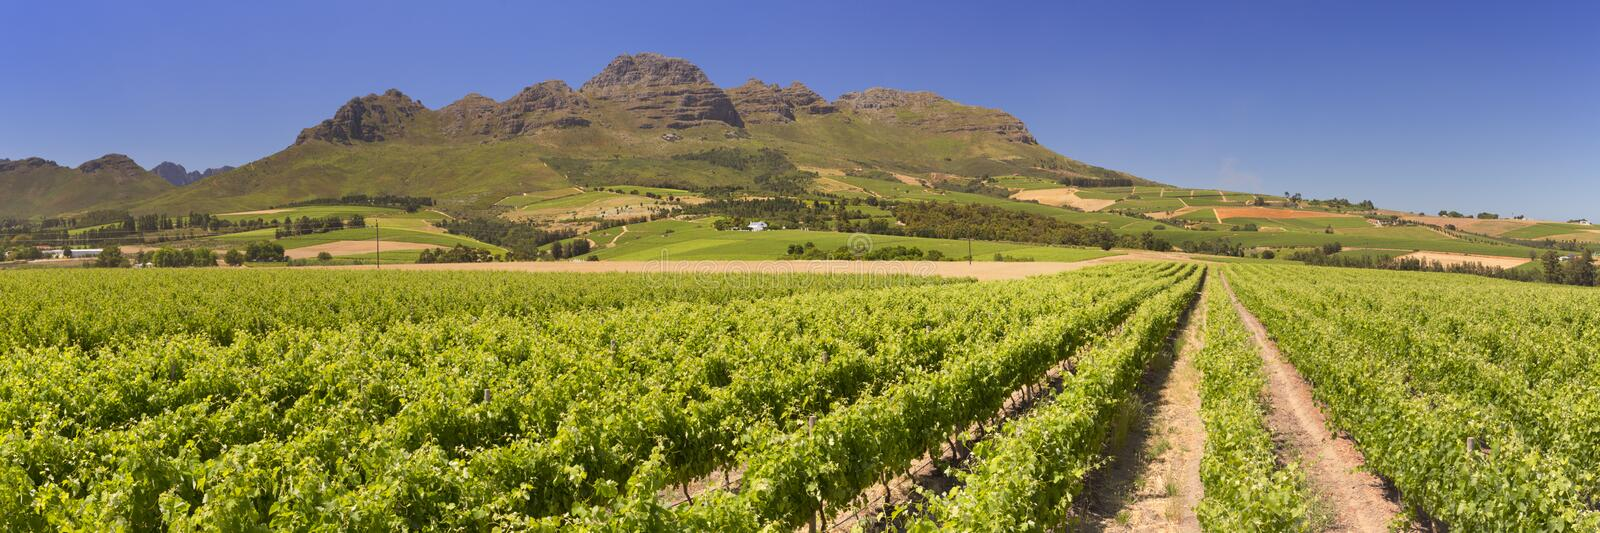 Vineyards near Stellenbosch in South Africa. Vineyards with mountains in the background near Stellenbosch in South Africa royalty free stock photo